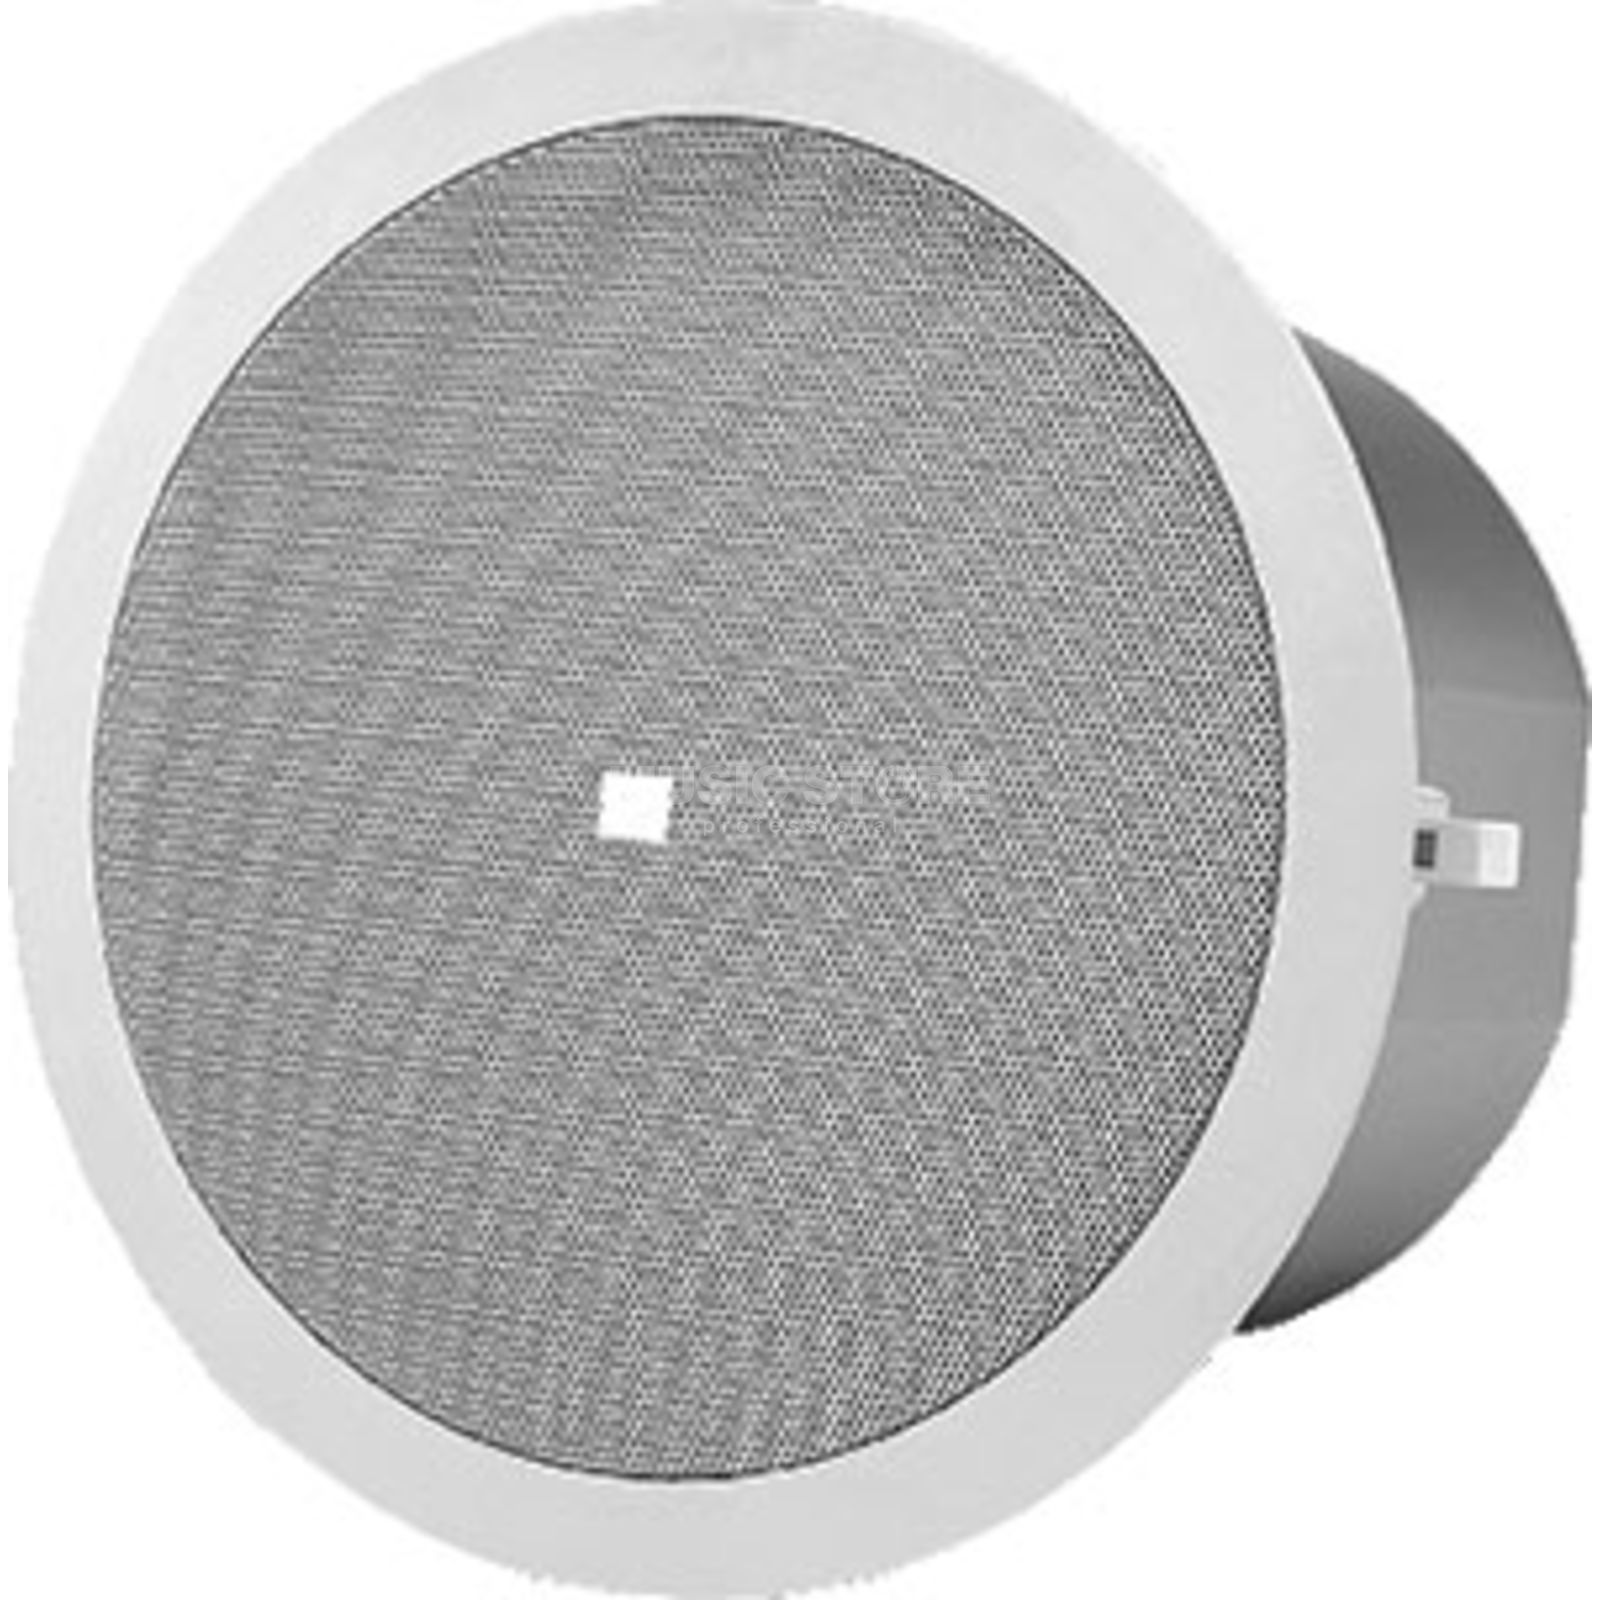 jbl en clipped square us ceiling commercial tiny speakers original products hires